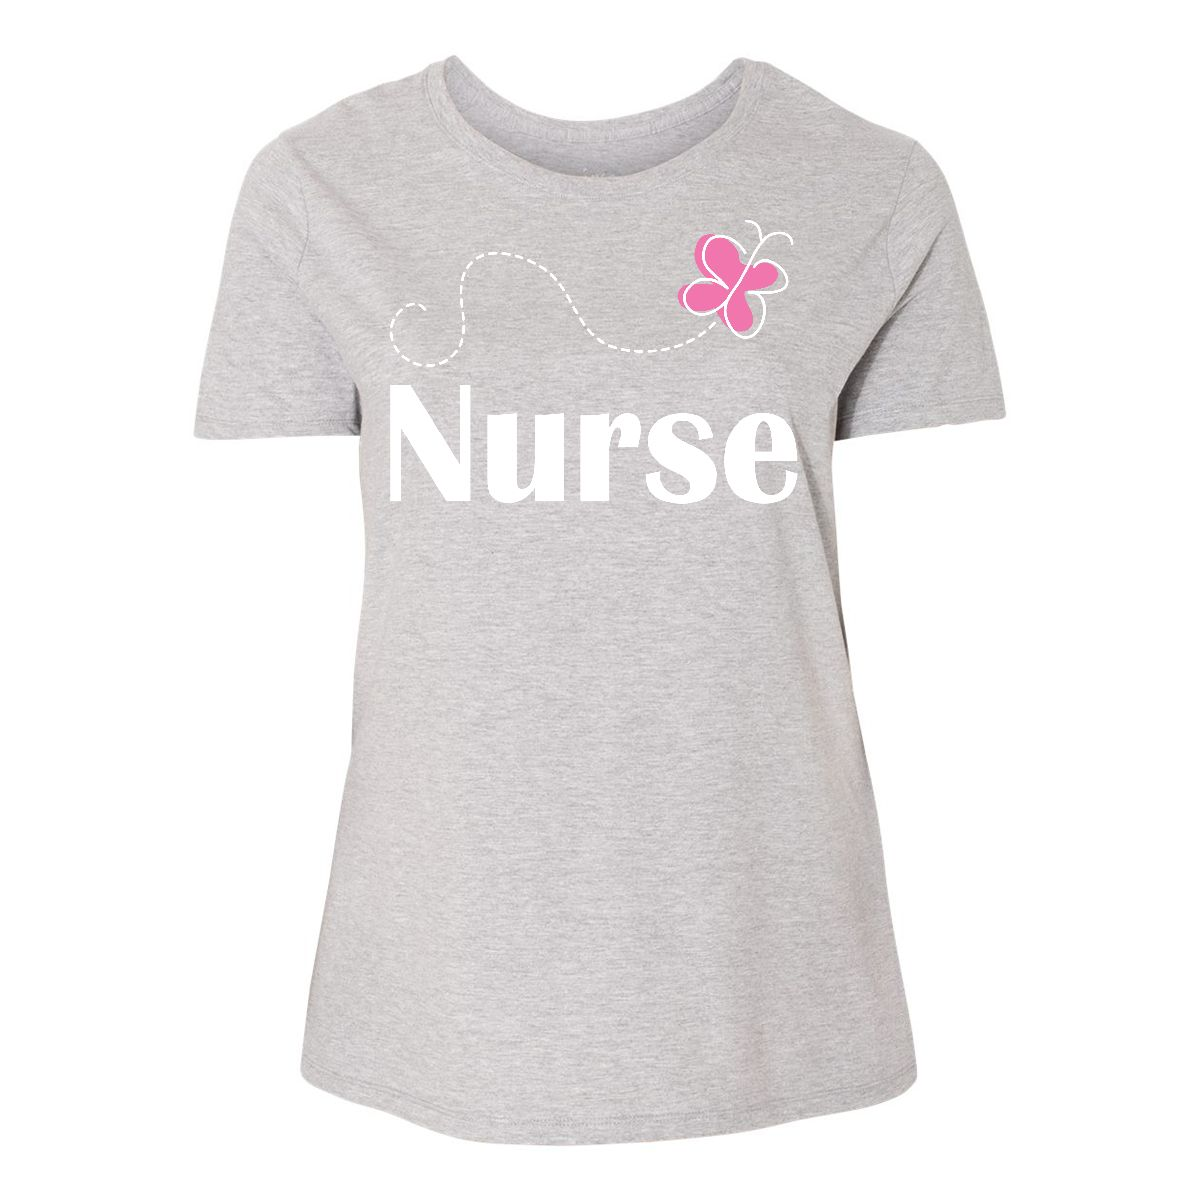 22e8eb5b36 Inktastic Nurse Cute Gift Women's Plus Size T-Shirt Nursing ...